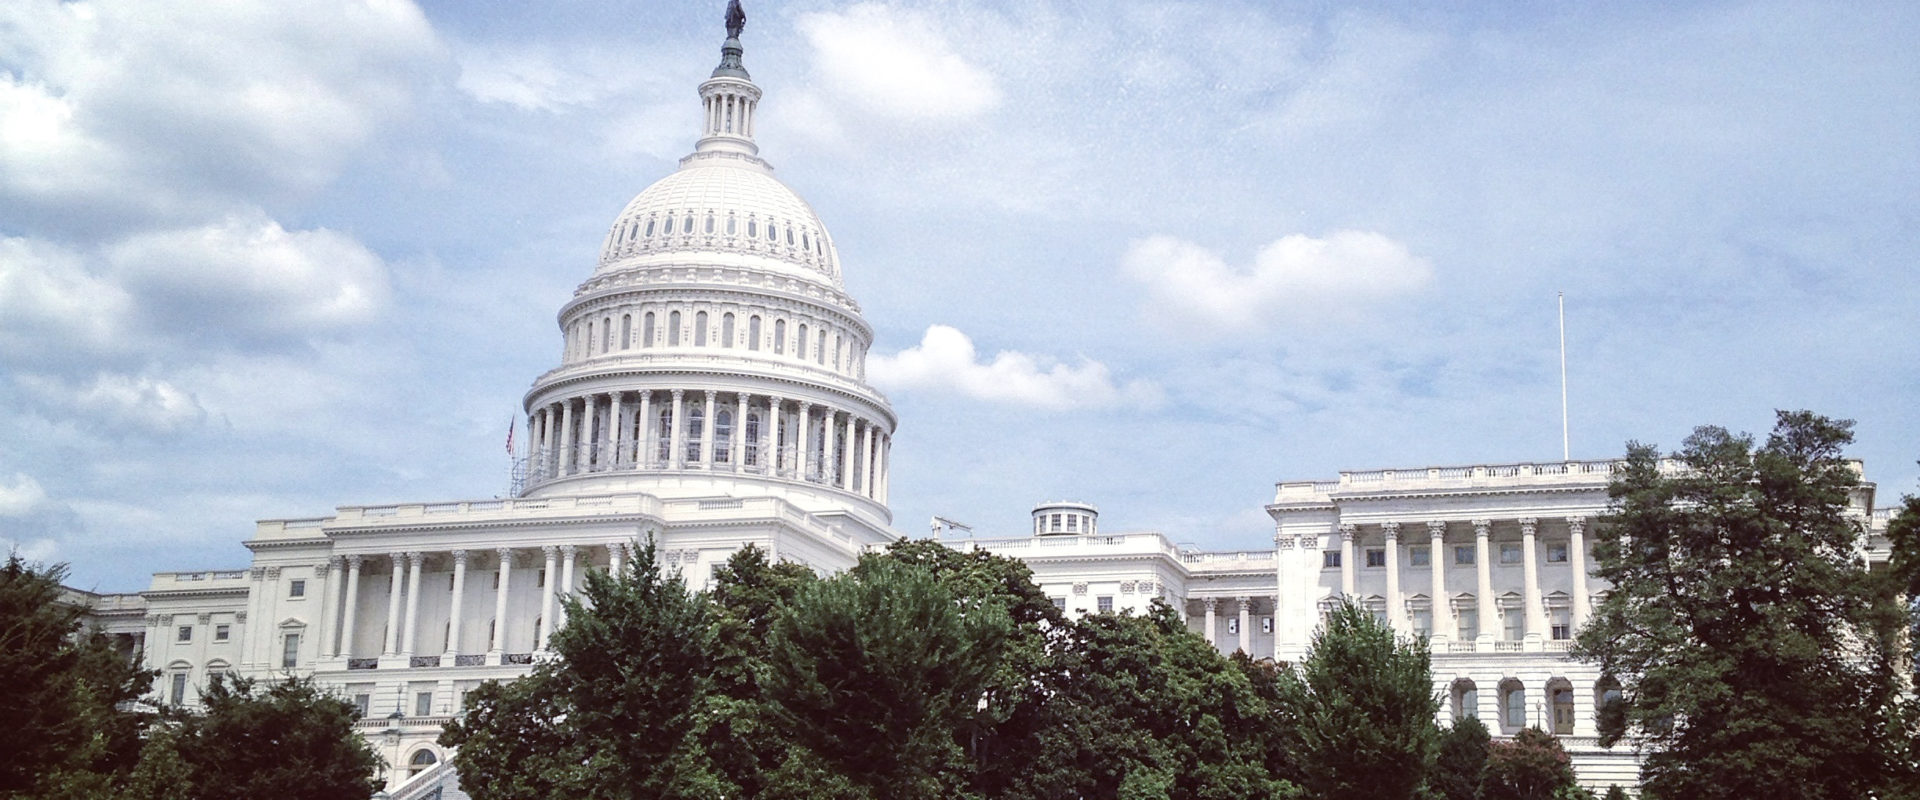 Stanton Chase Washington, DC Office Welcomes New Director Cover Image